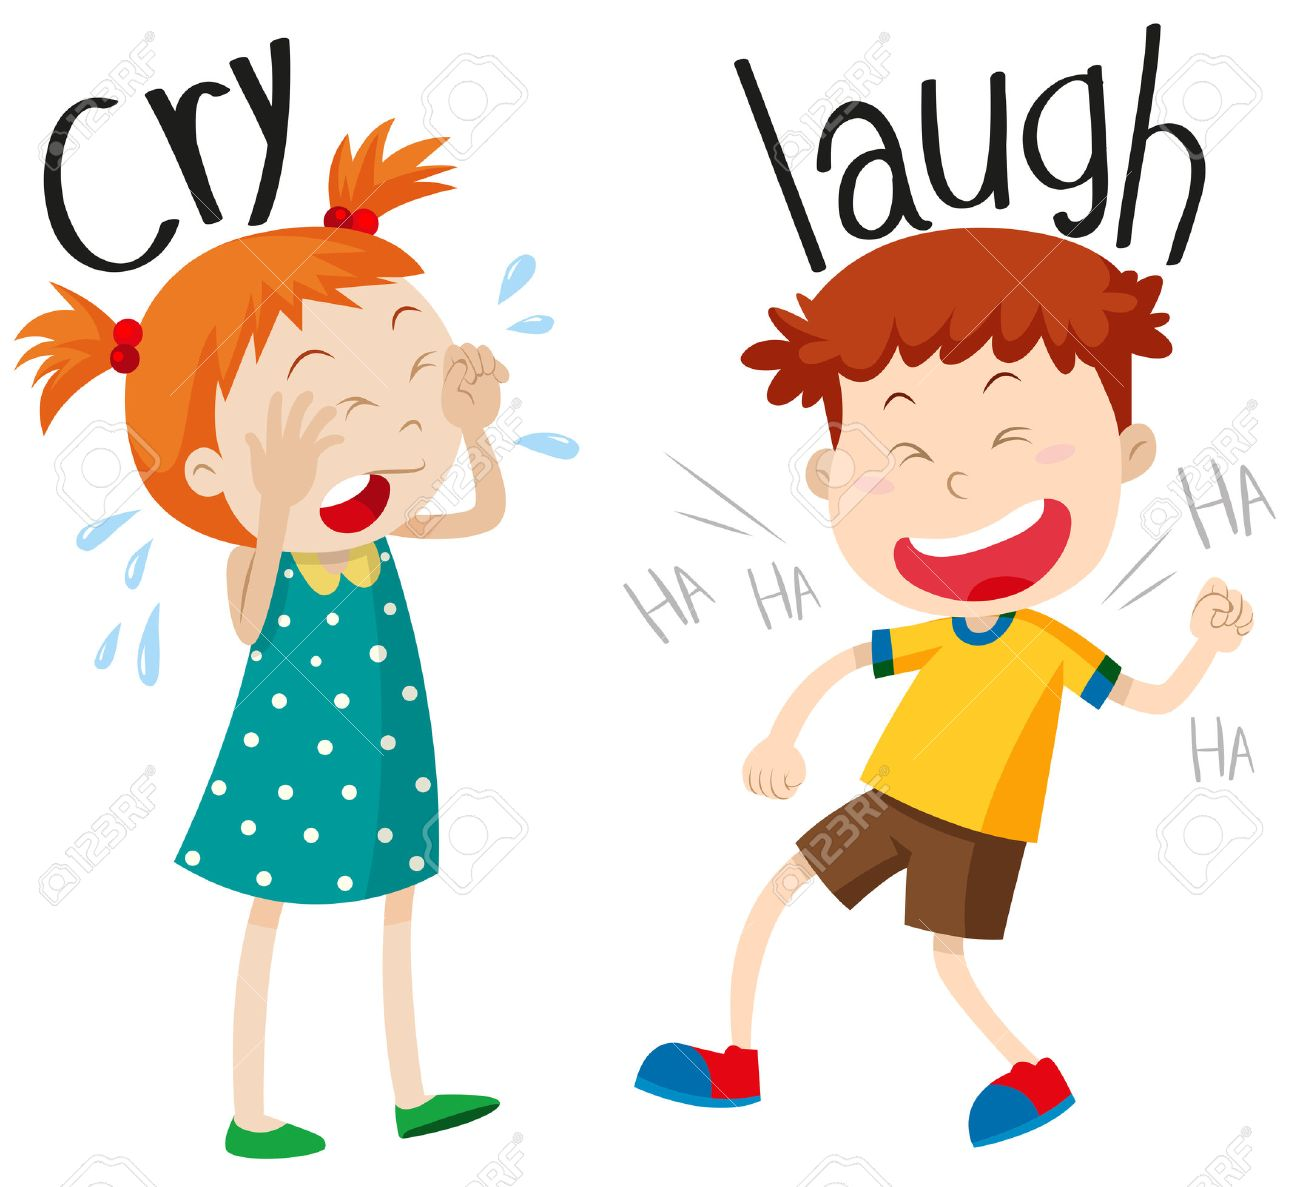 opposite adjectives cry and laugh illustration royalty free cliparts rh 123rf com laugh clipart images laugh clipart free